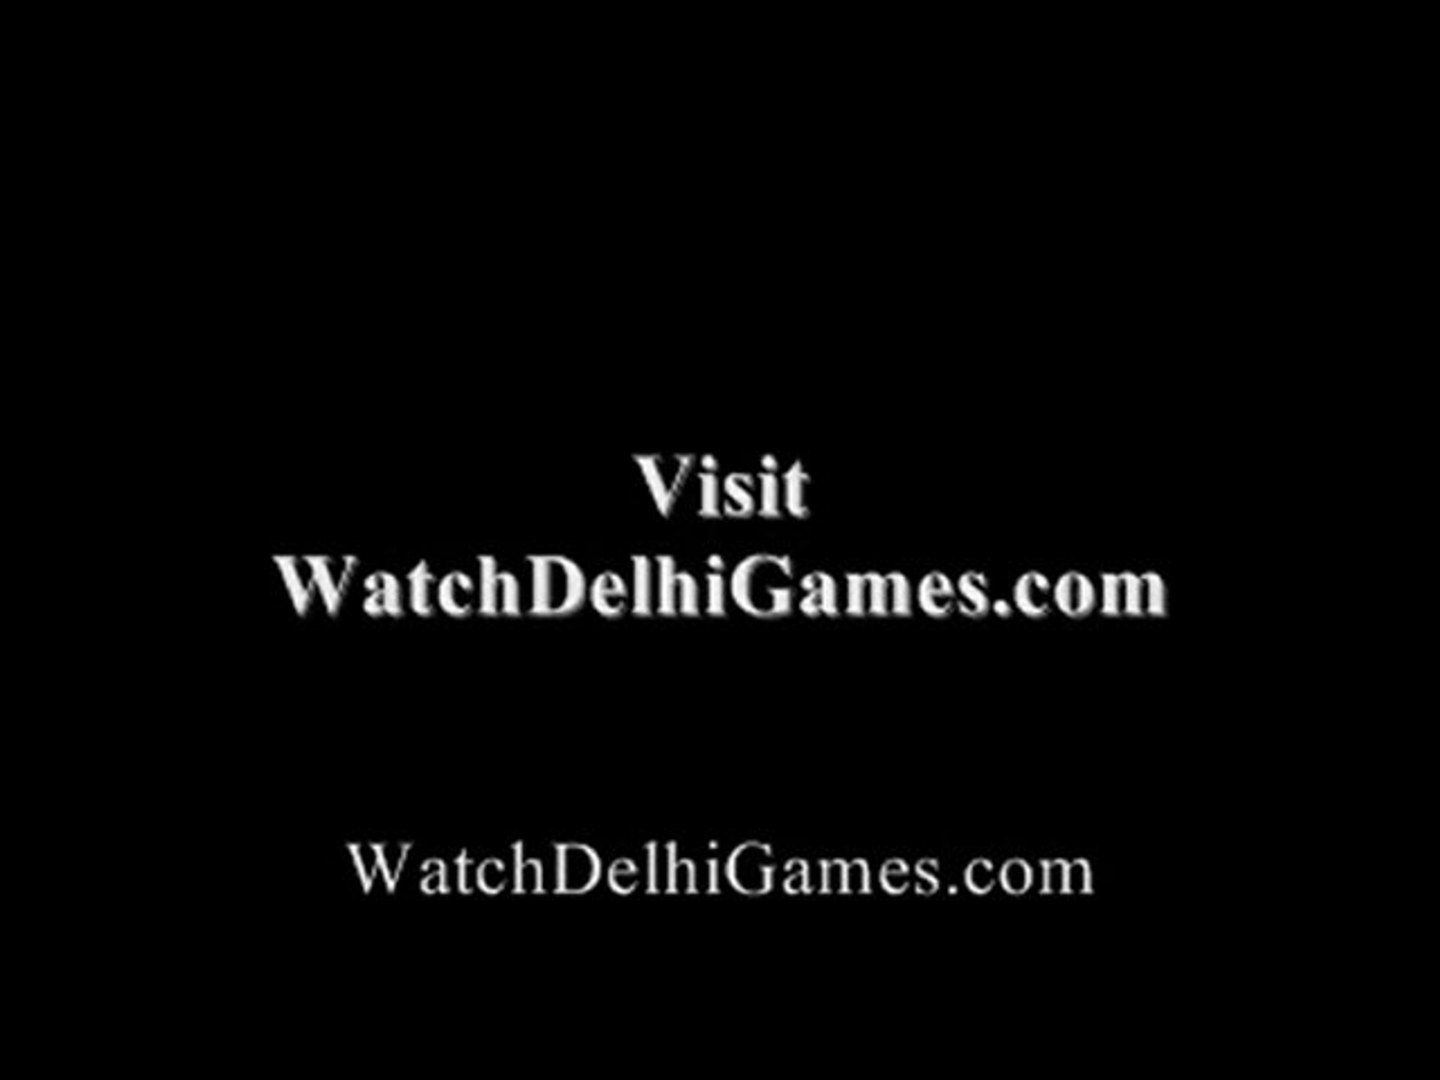 watch 2010 table tennis Commonwealth Games stream online